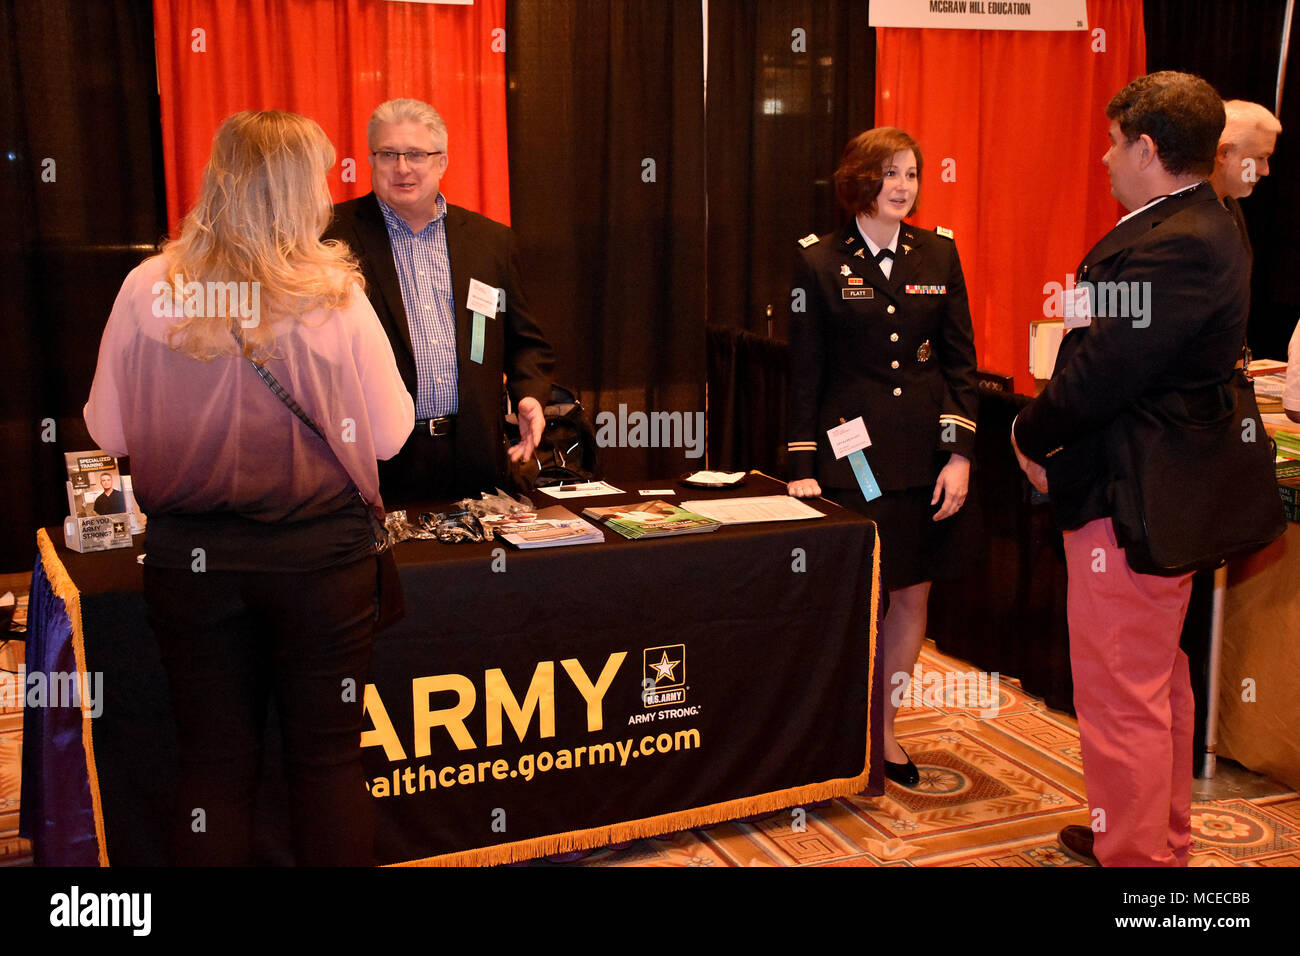 Bruce Schamburek, education services specialist for the 6th Medical Recruiting Battalion, and Captain Katie Flatt, U.S. Army health care recruiter from the Aurora Medical Recruiting Station, speak to attendees of the Trauma, Critical Care & Acute Care Surgery Conference at Caesars Palace on 10 April. Schamburek and Flatt were on hand, along with members of the Las Vegas Medical Recruiting Station, to explain the benefits and opportunities of a career in Army Medicine. For more information on the Army's more than 80 medical specialties go to healthcare.goarmy.com. (U.S. Army Photo by Andrew Lyn - Stock Image